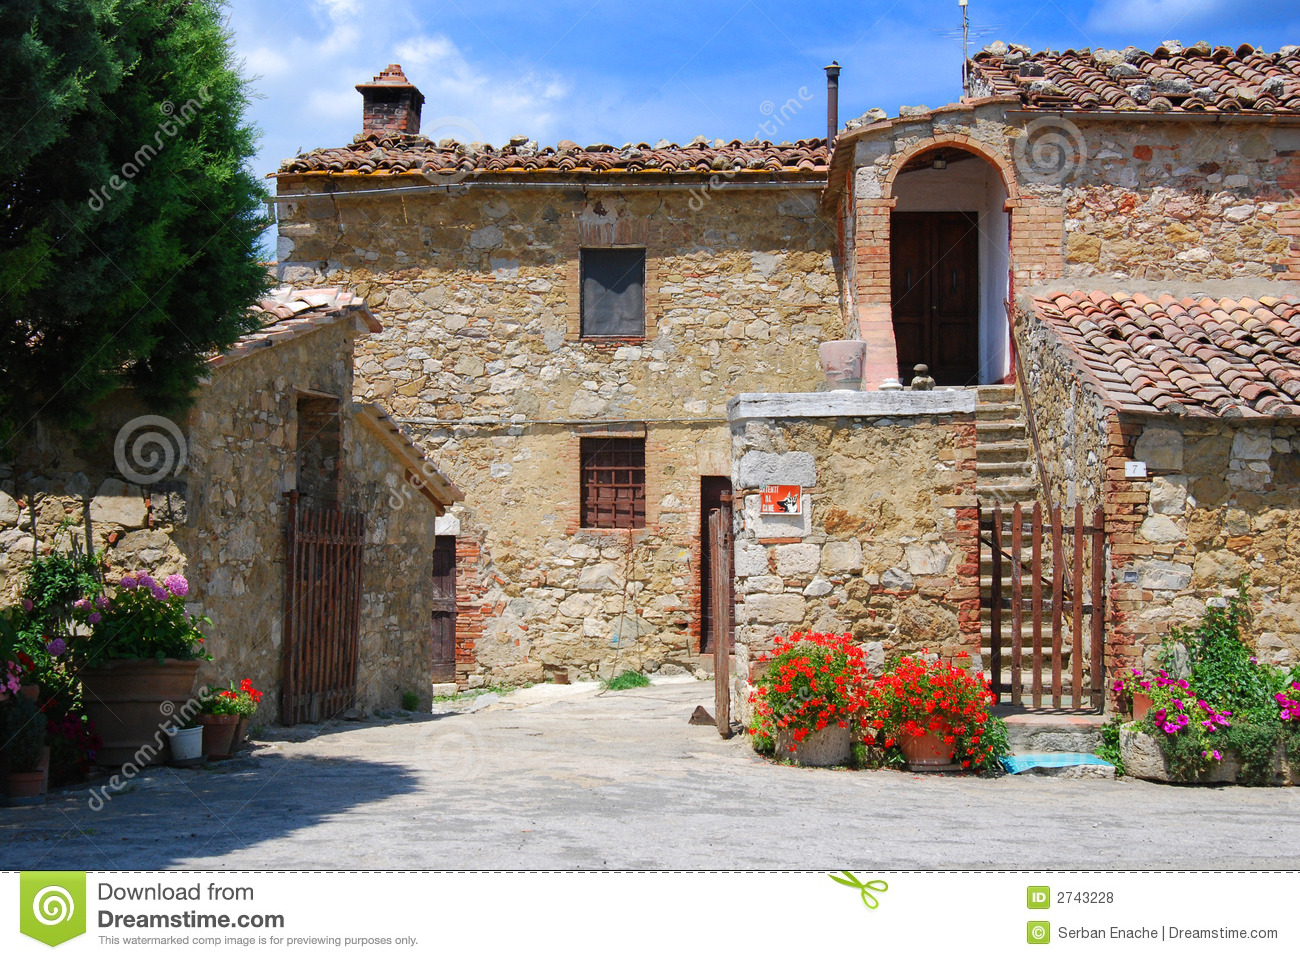 Tuscany house stock photo image of italy building for Tuscany houses